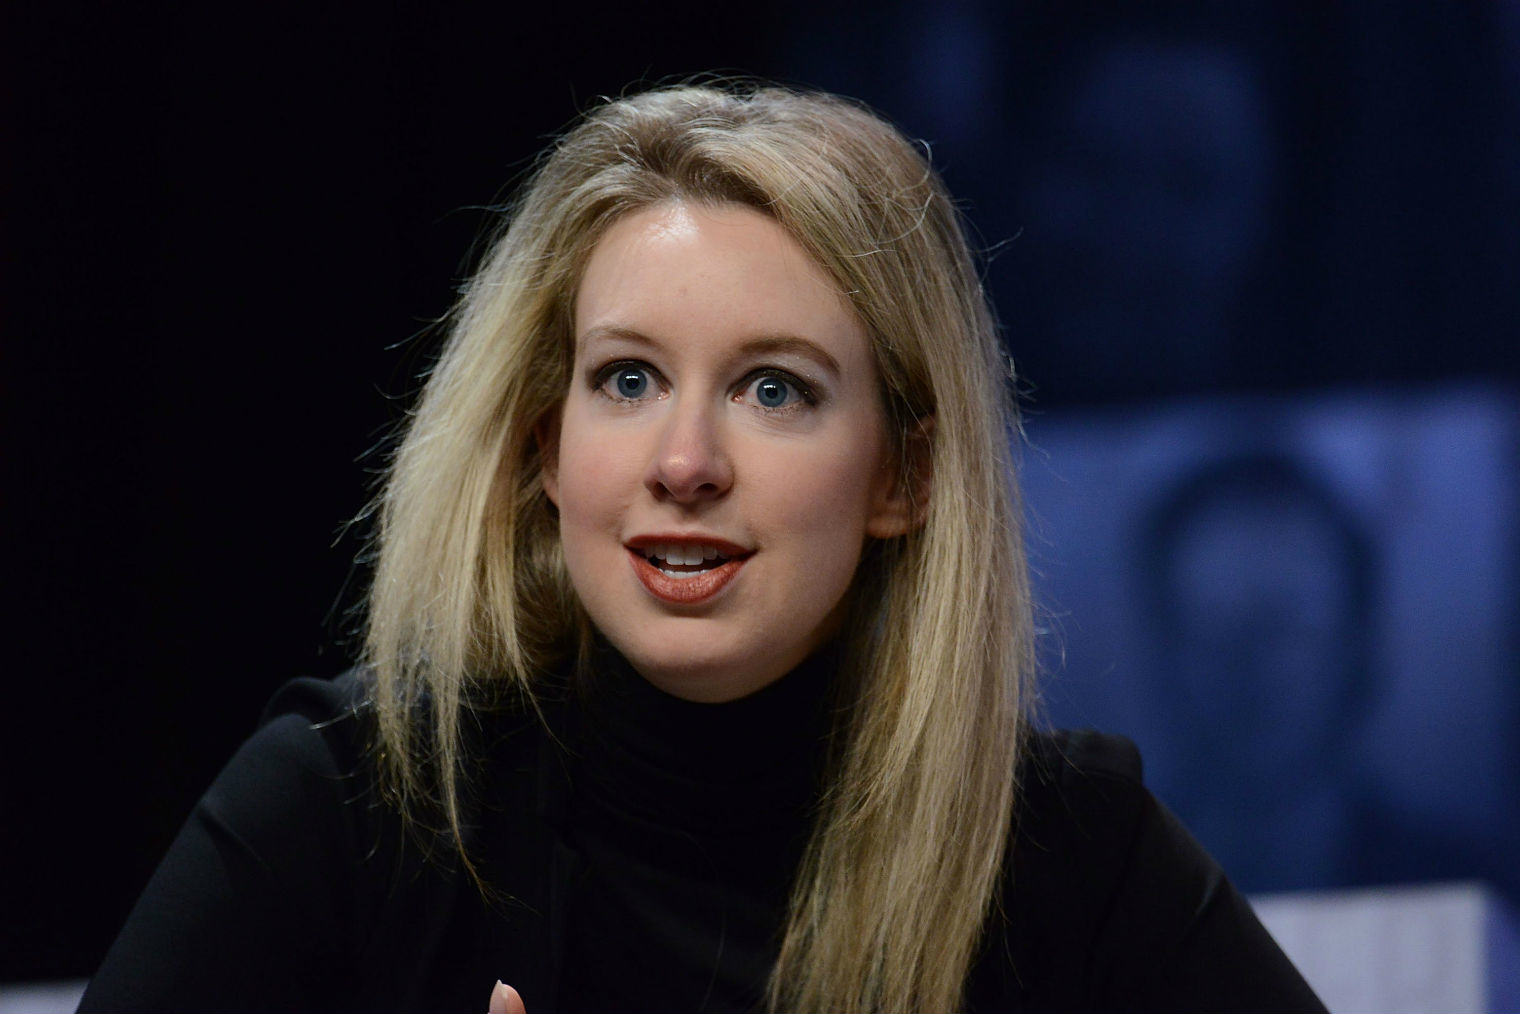 This Woman Dropped Out Of University At 19, Is Now Worth £5.9 Billion UNILAD elizabeth holmes 151228